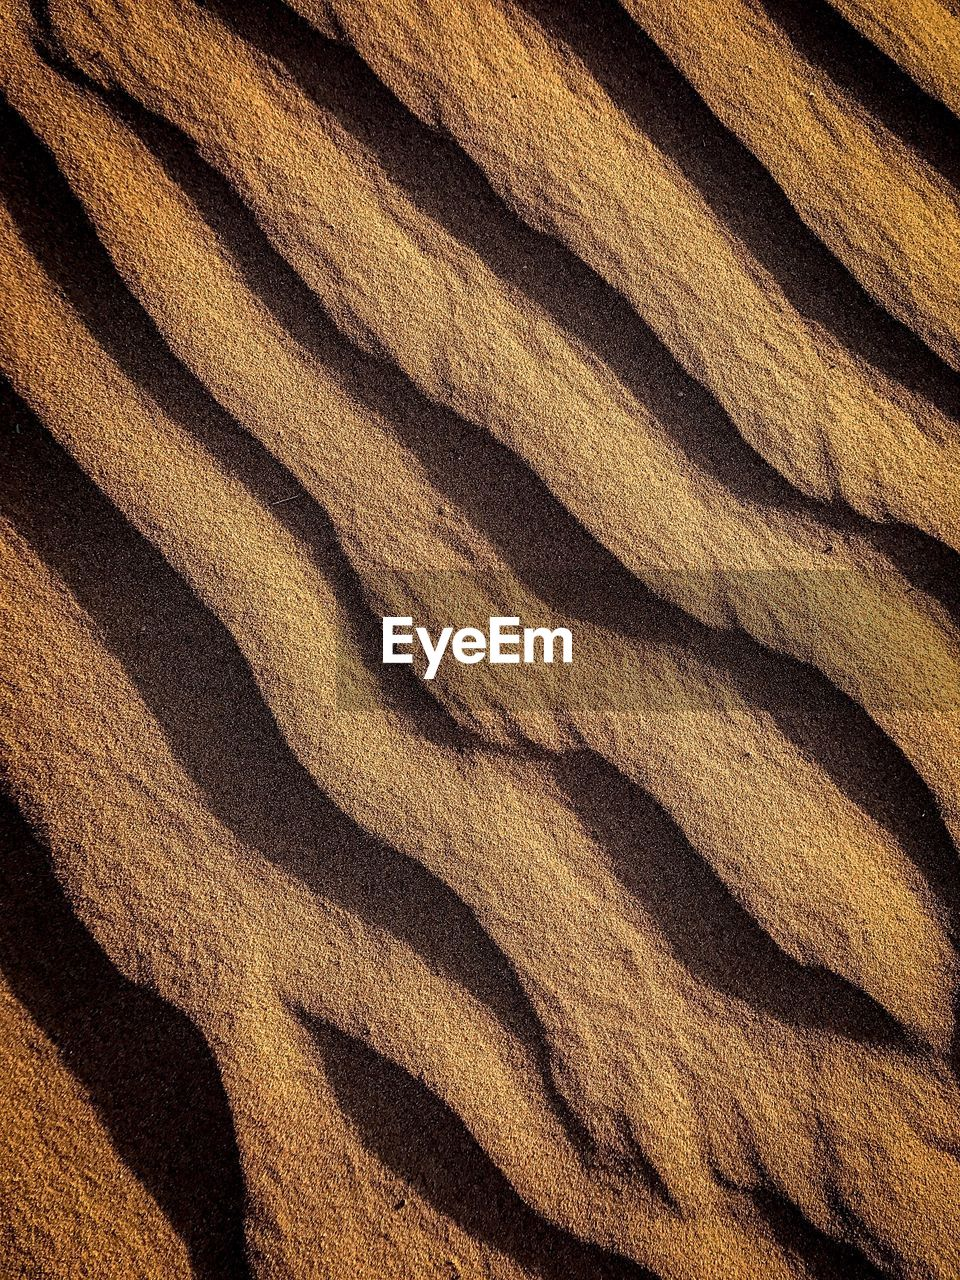 backgrounds, full frame, pattern, no people, textured, sand, land, nature, natural pattern, brown, close-up, day, textile, wave pattern, outdoors, rough, sunlight, abstract, wood - material, landscape, arid climate, climate, clean